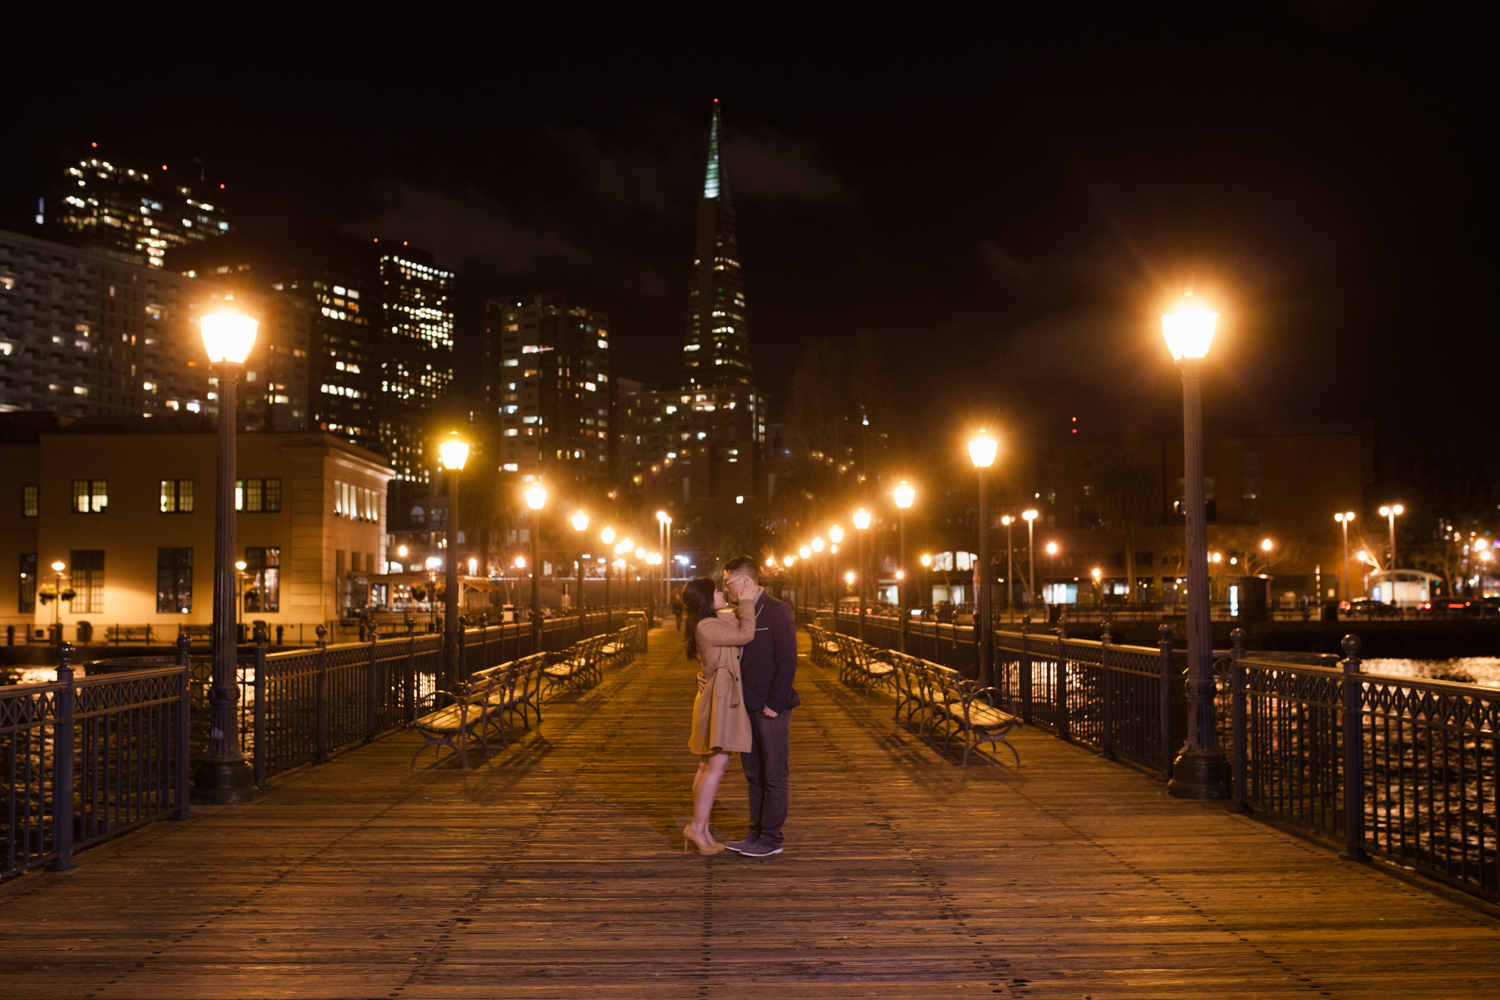 San Francisco Engagement Photography, Ranalla Photo and Films